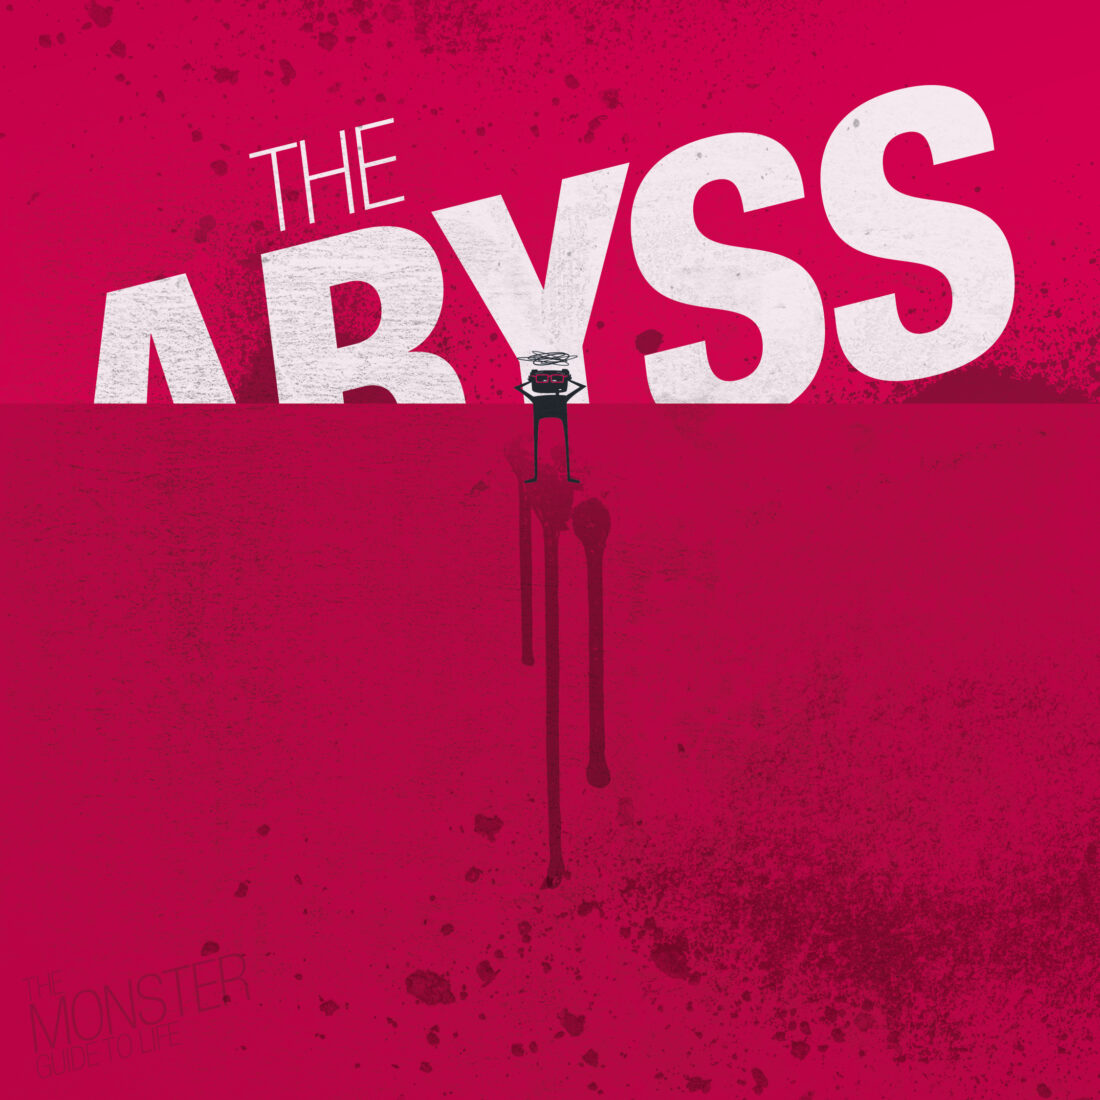 The Abyss illustration